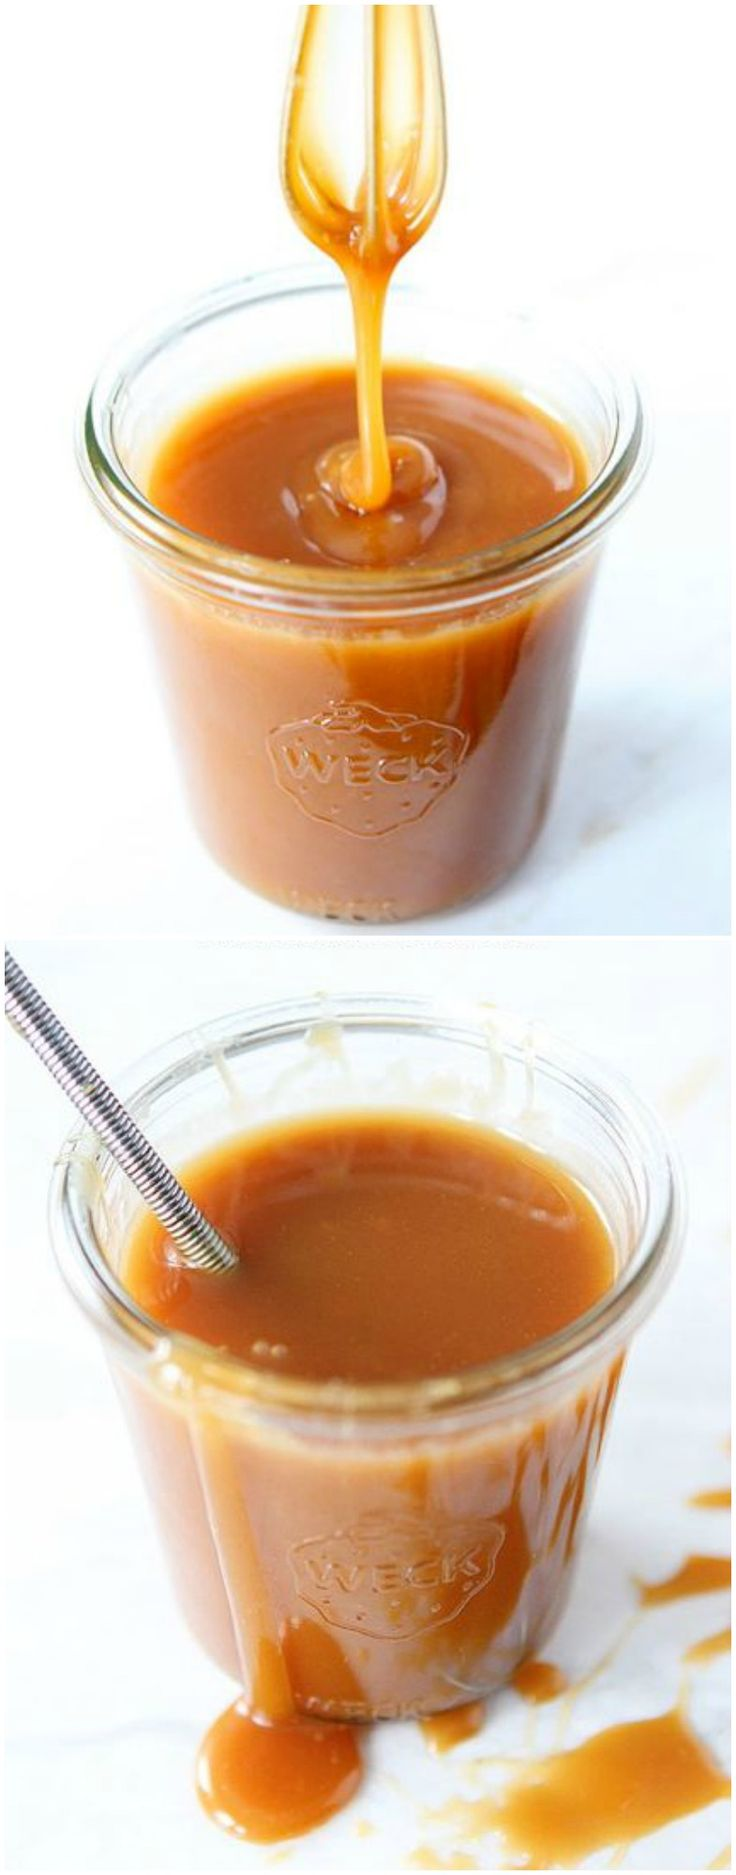 Salted Caramel Sauce Recipe on twopeasandtheirpod.com The BEST caramel sauce and it's easy to make too!